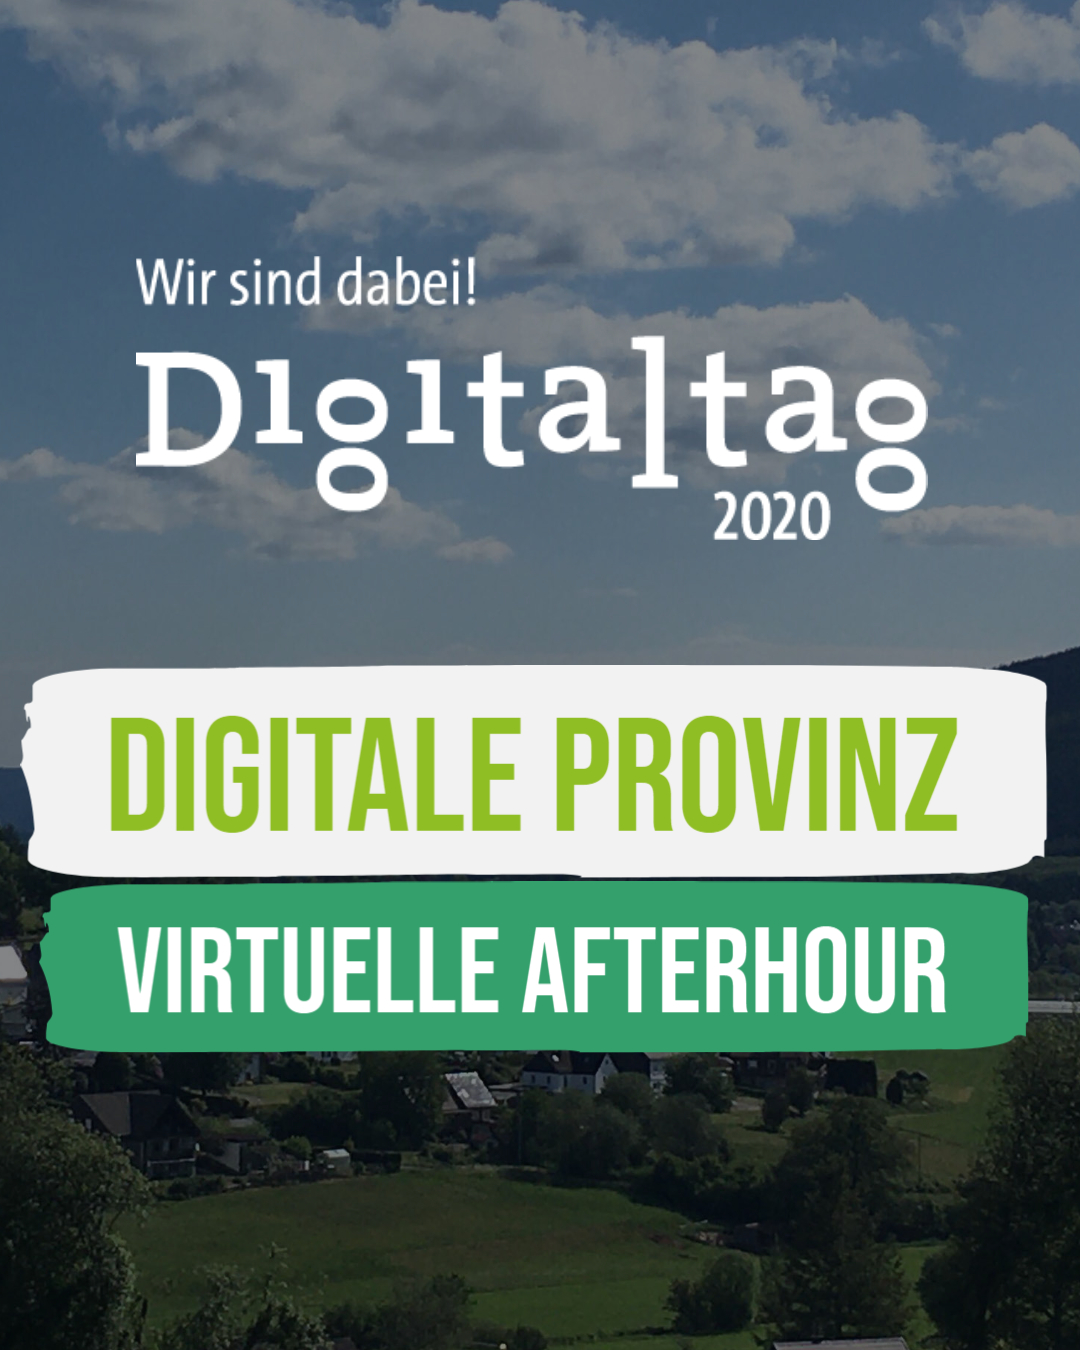 Digitale Provinz